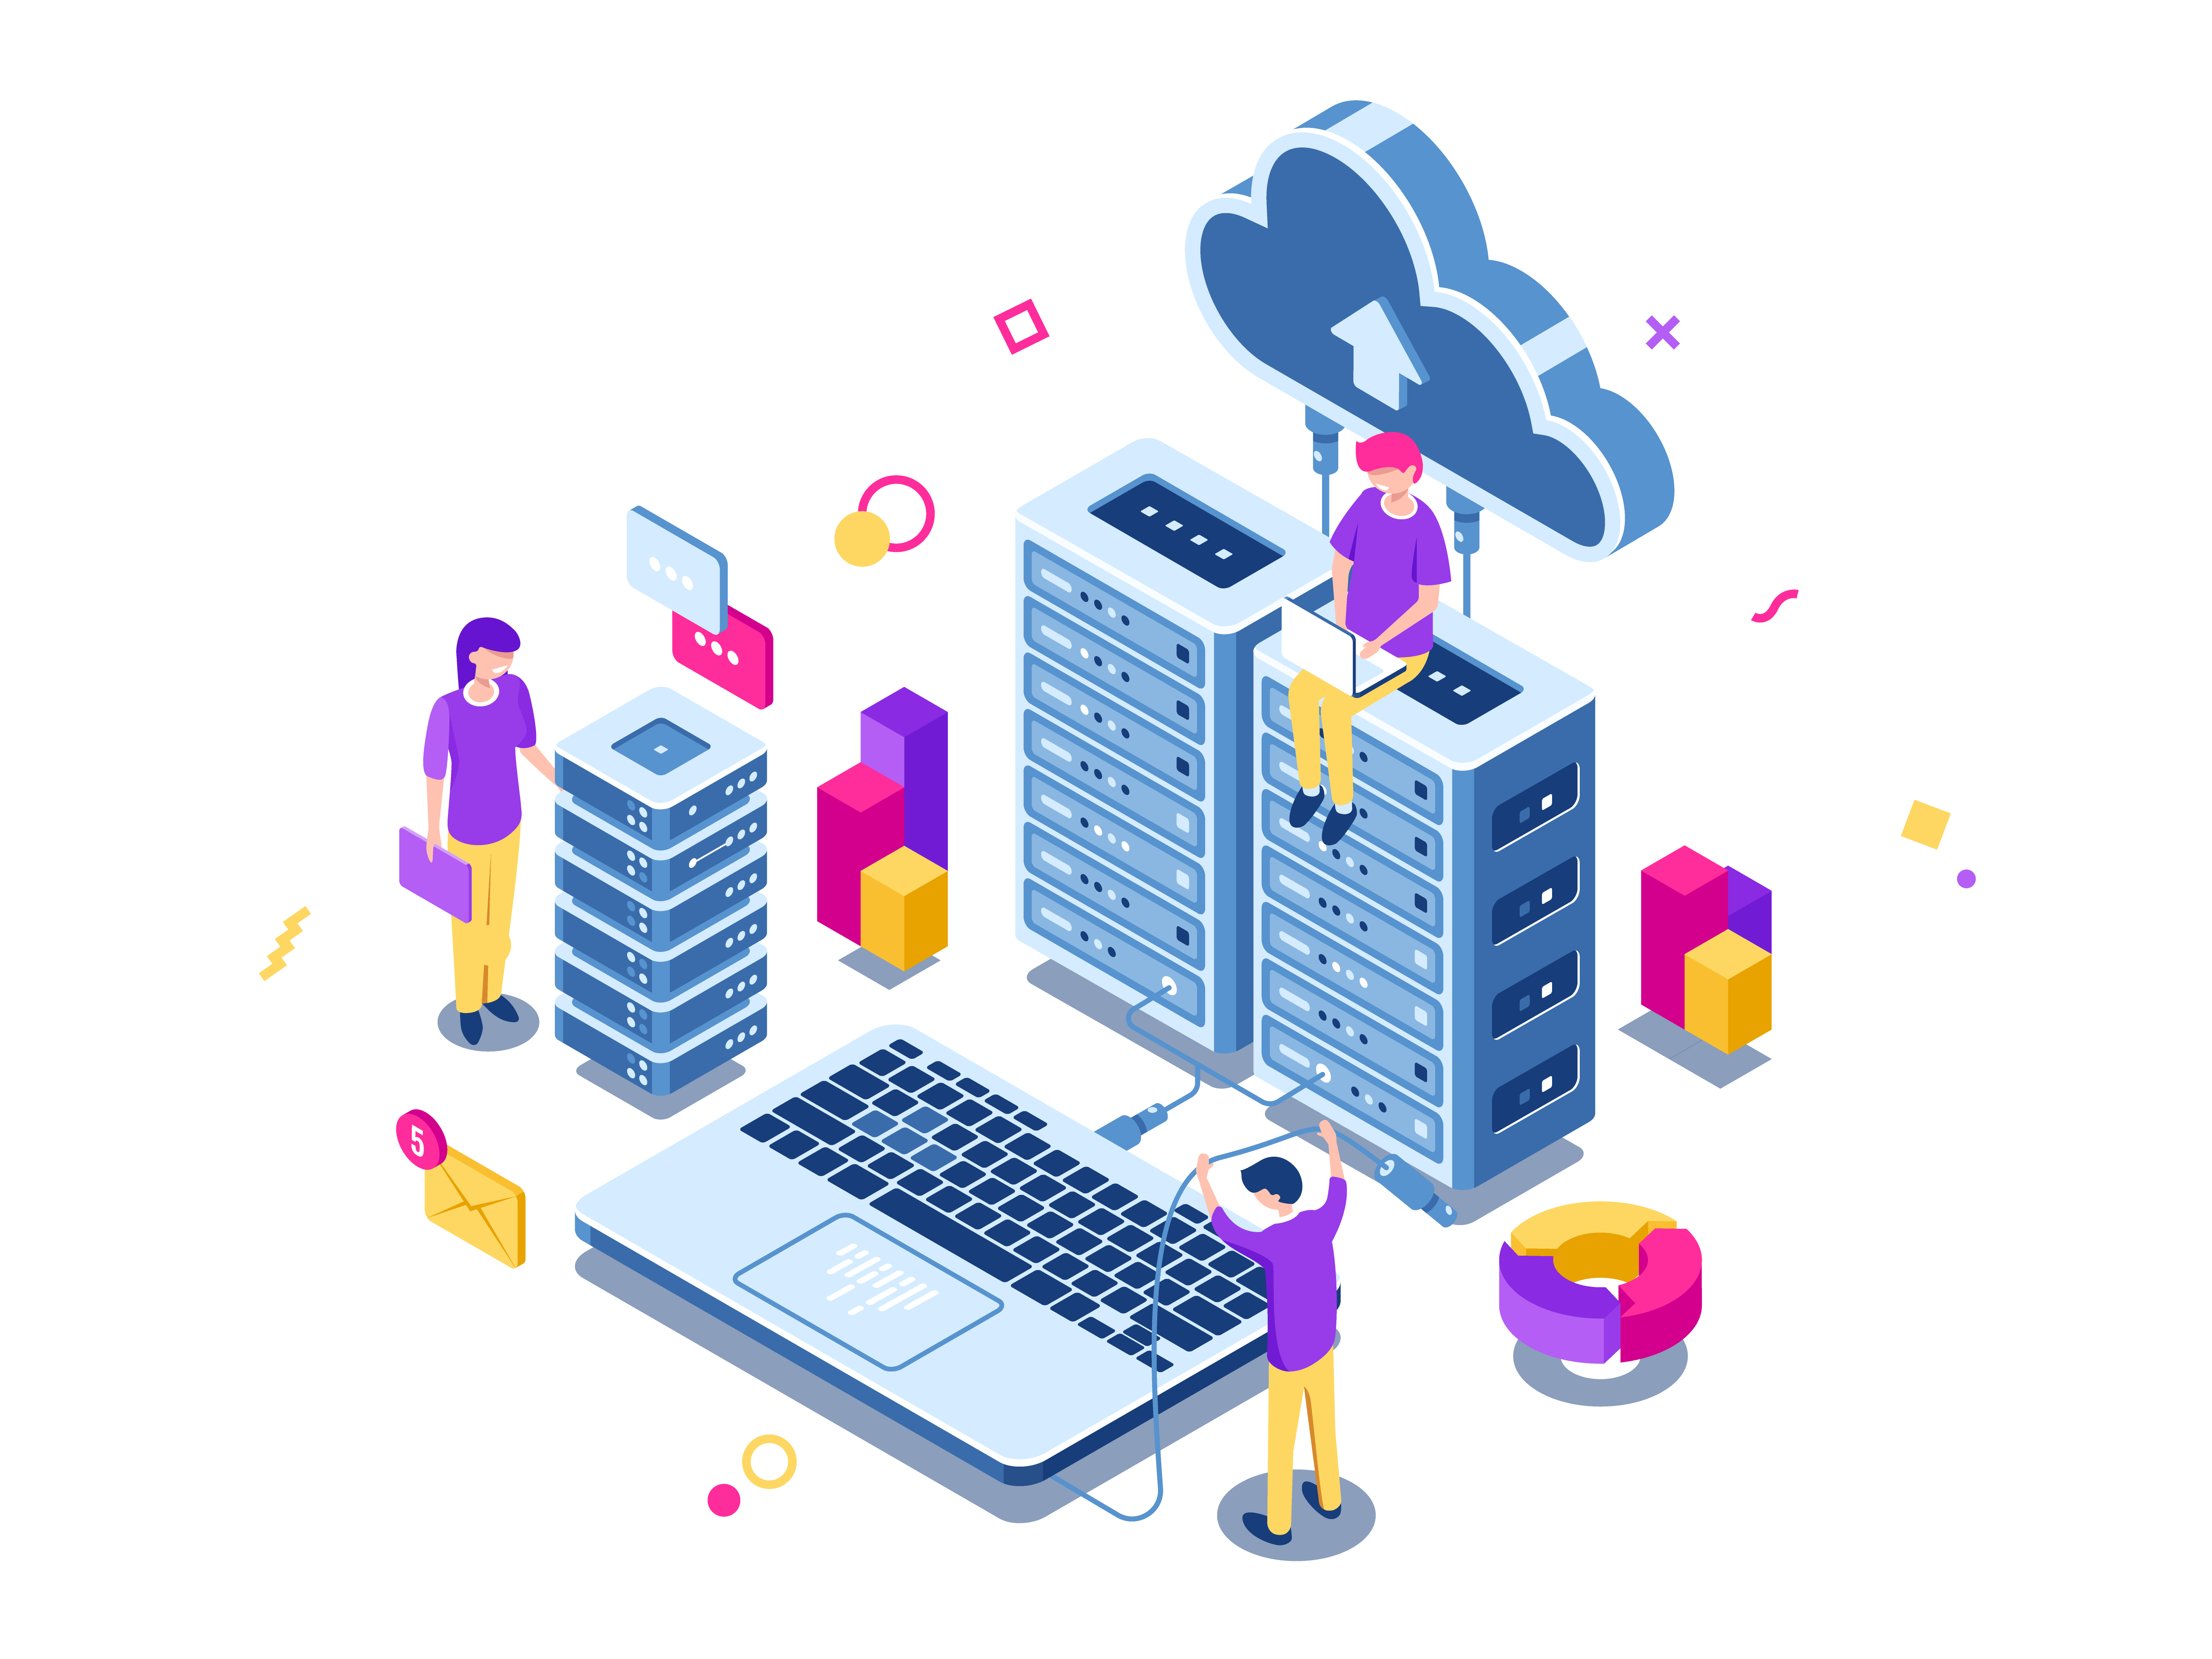 Big data center, server room rack, engineering process, teamwork, computer technology, cloud storage, command work, isometric people vector